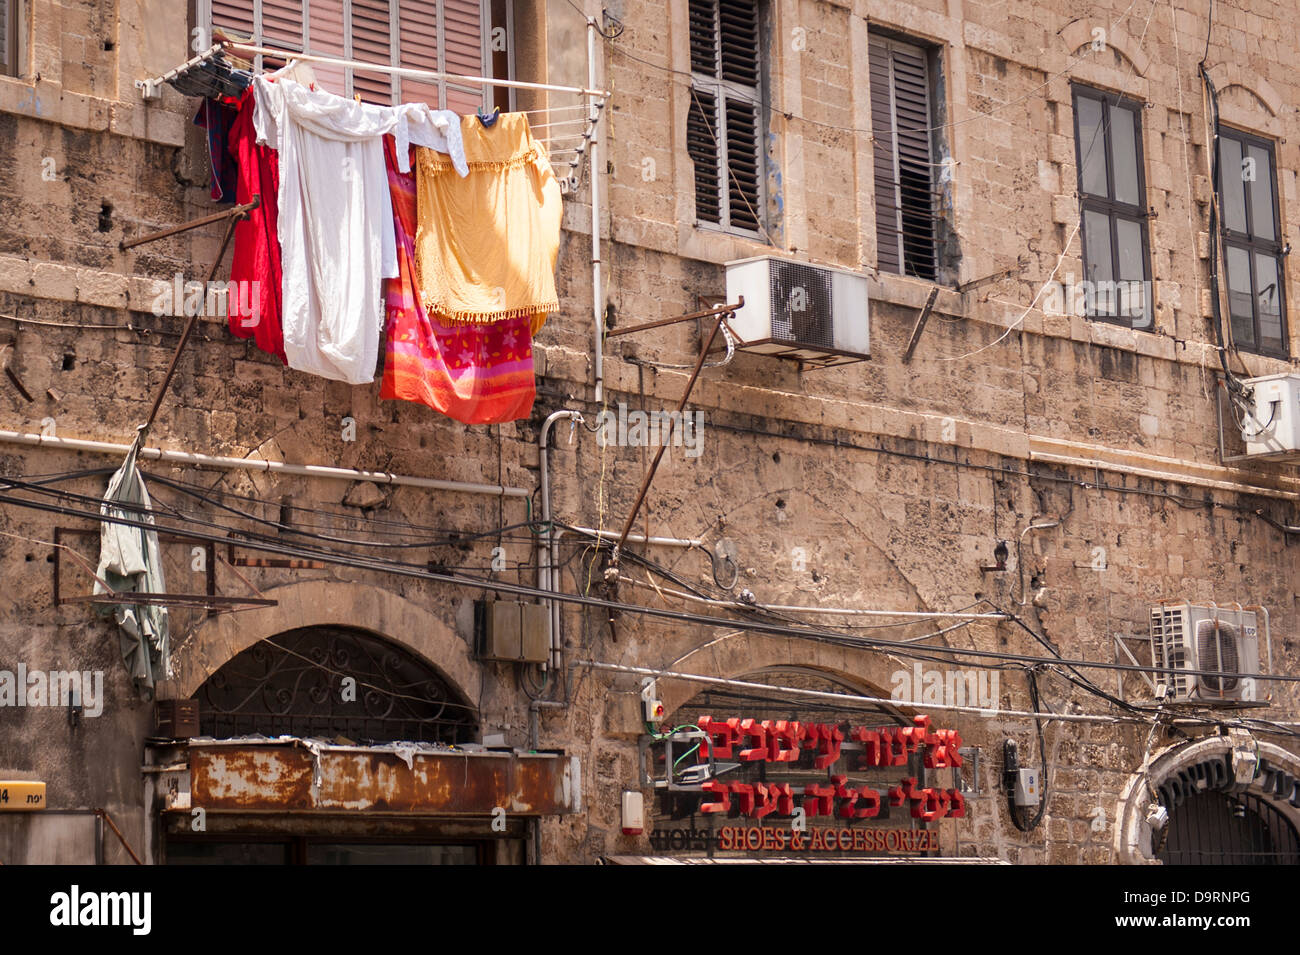 Israel Jaffa Yafo Old City street scene washing laundry hanging on line outside window over shops stores road colourful - Stock Image